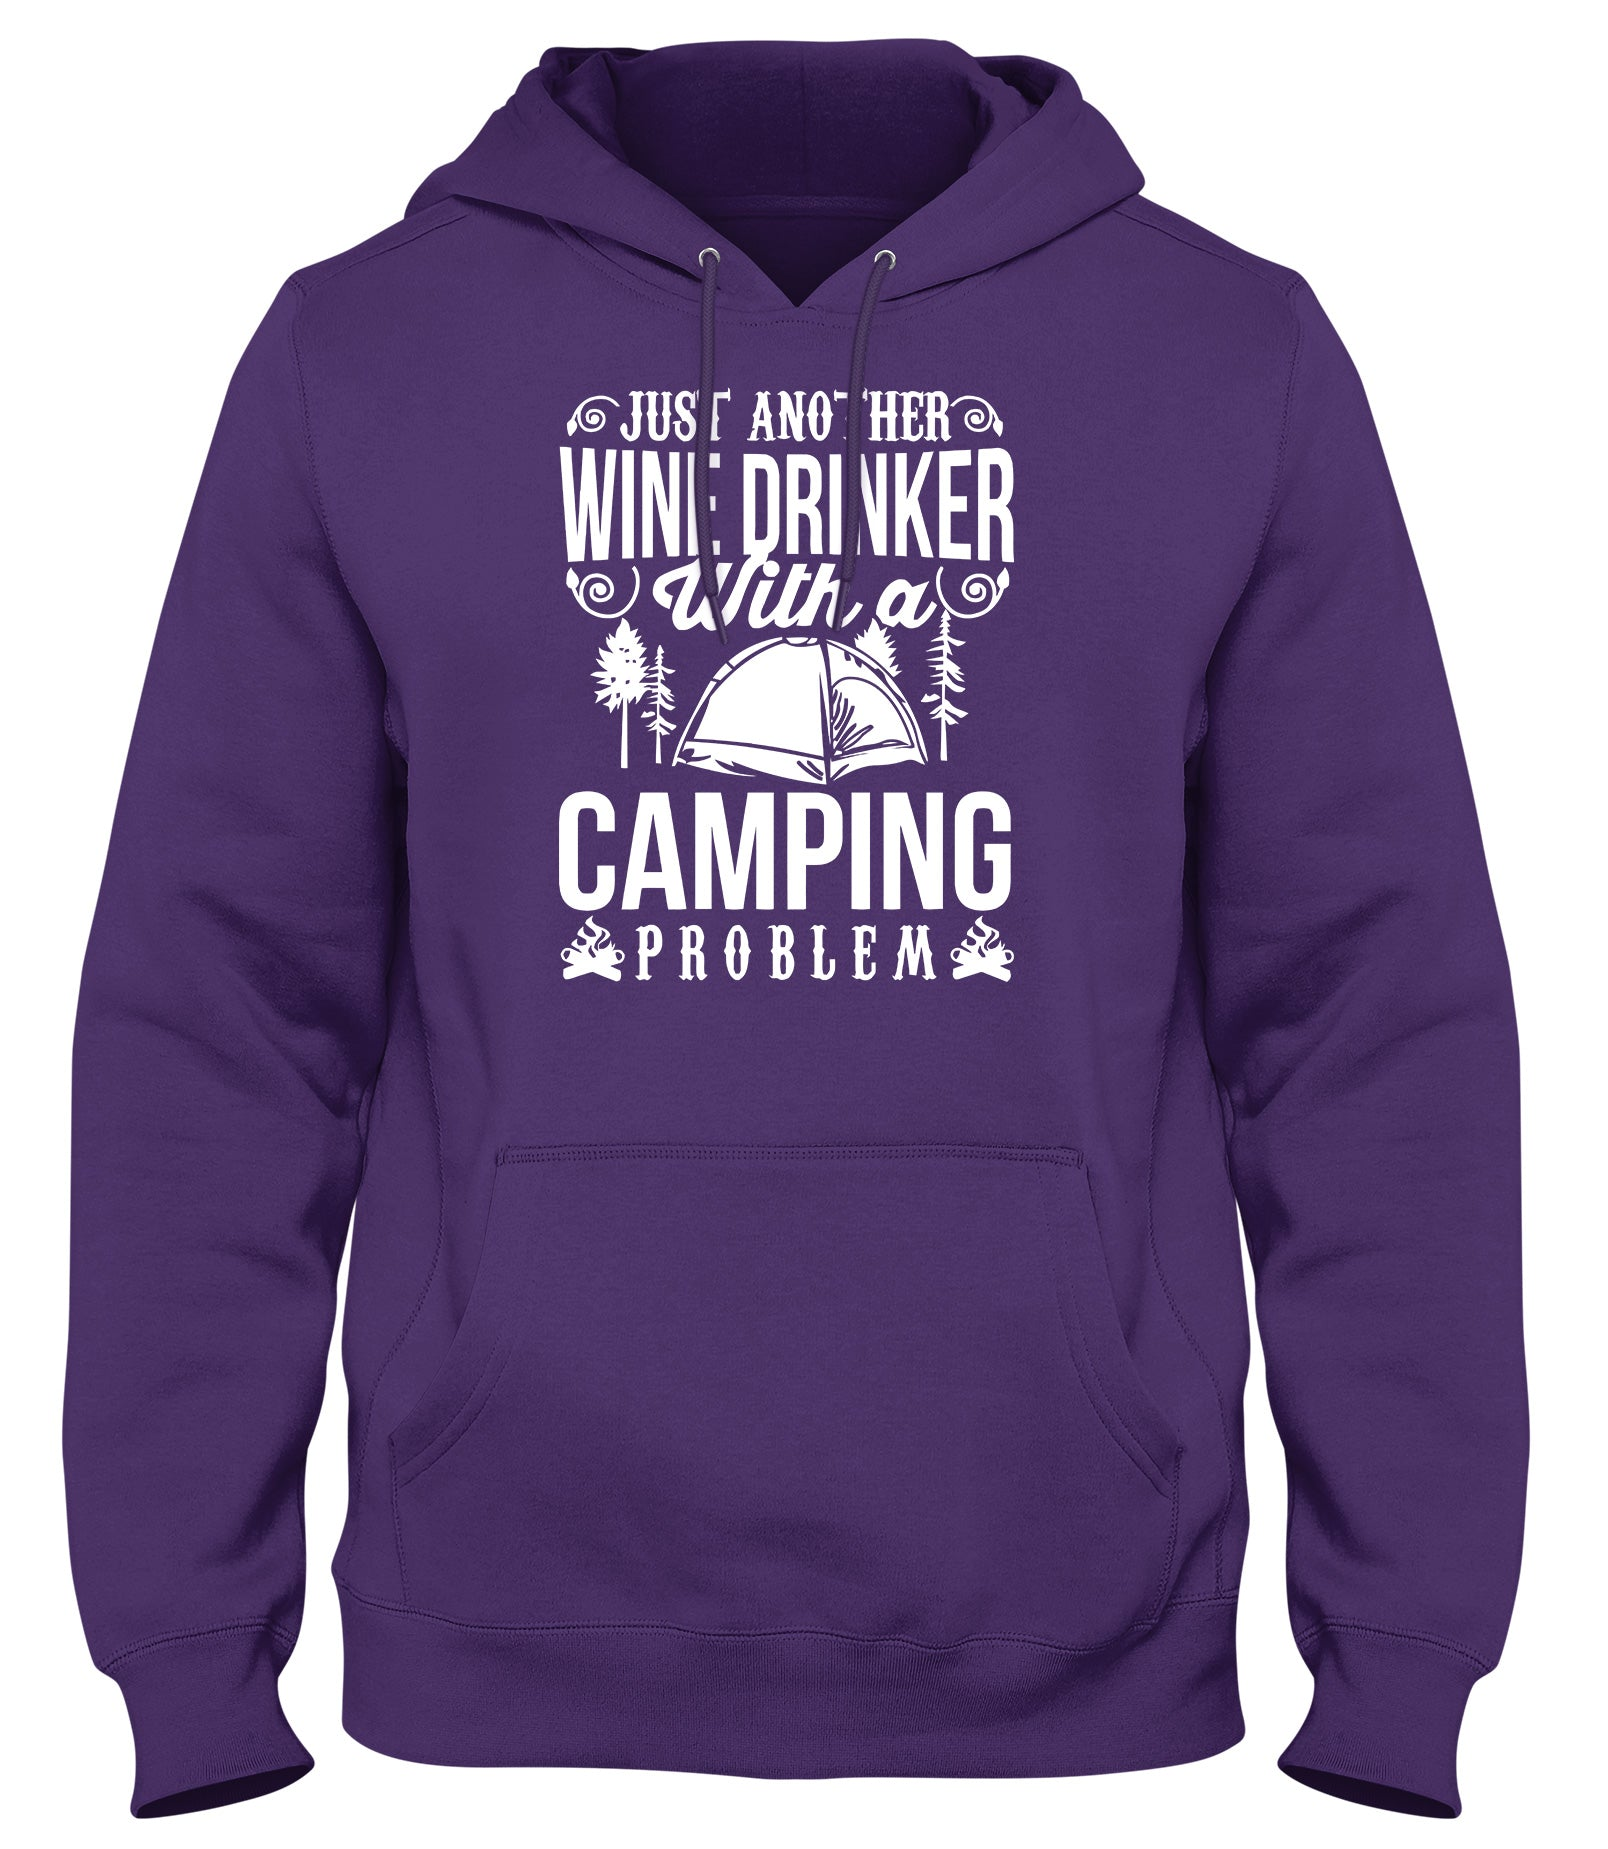 JUST ANOTHER WINE DRINKER WITH A CAMPING PROBLEM MENS WOMENS LADIES UNISEX FUNNY SLOGAN HOODIE